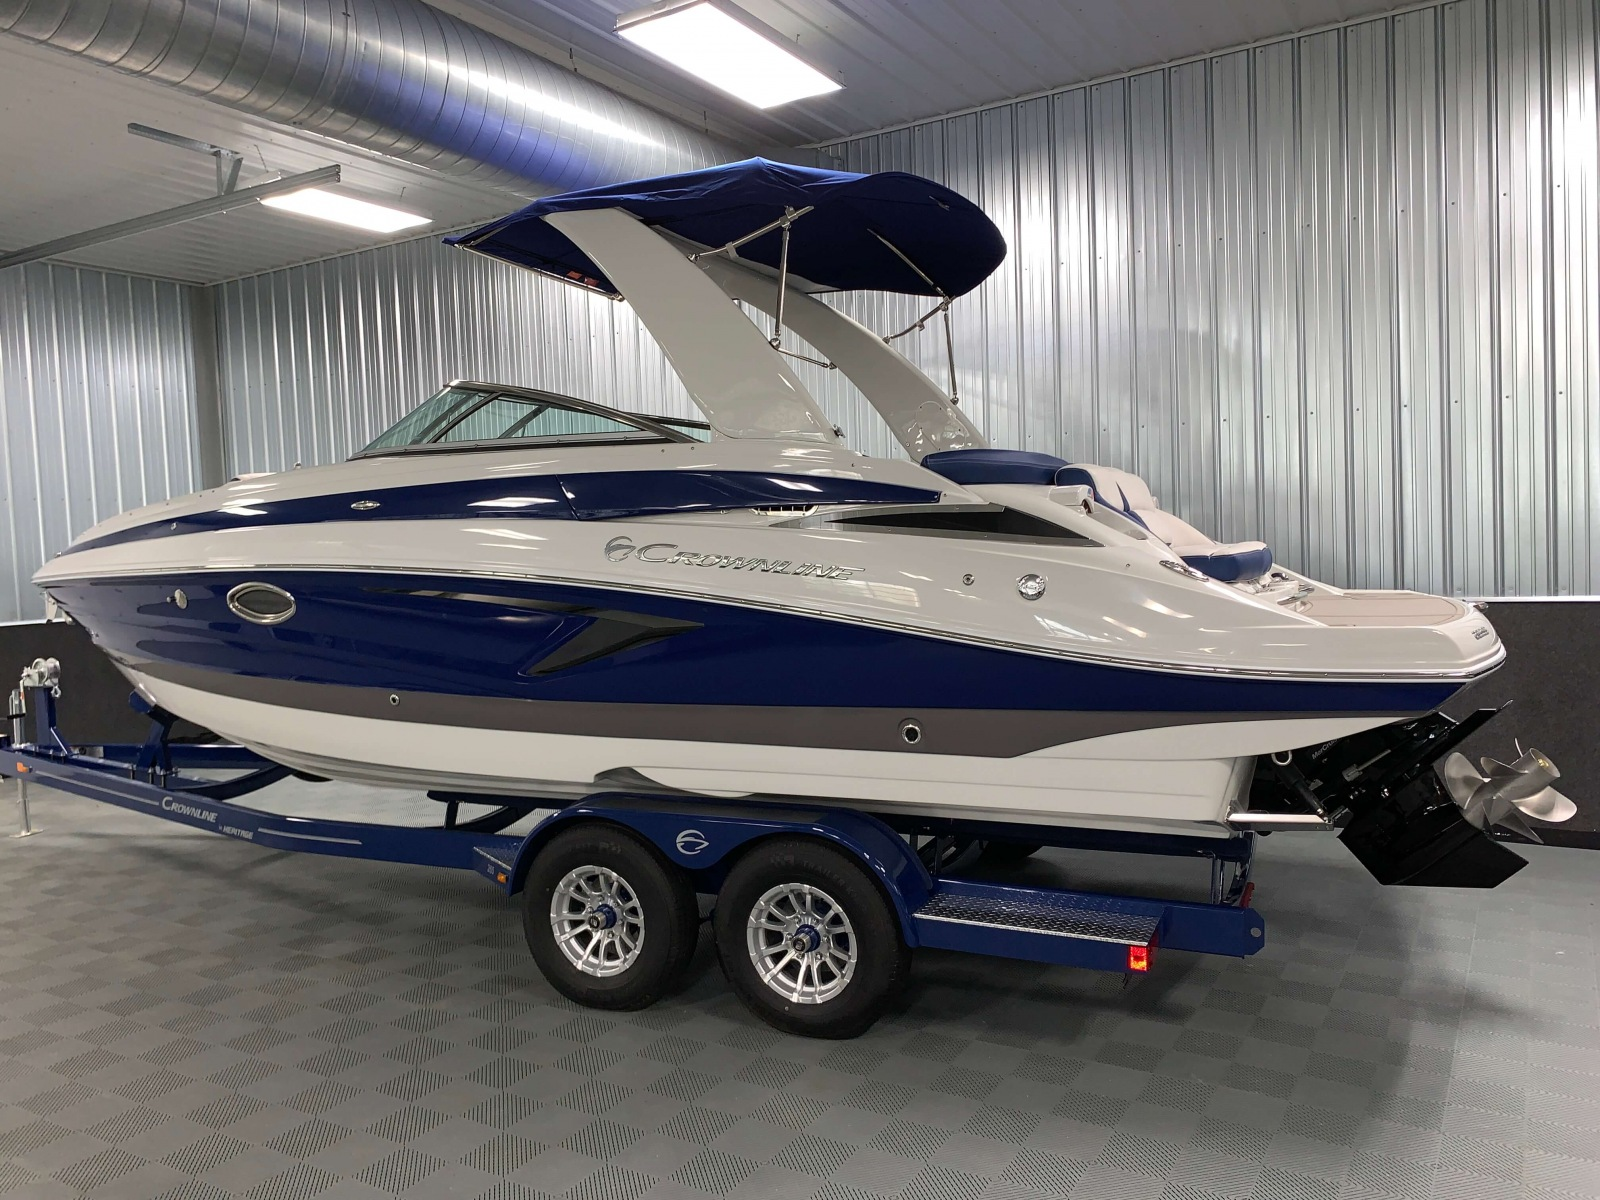 Slate Exterior Color of the 2021 Crownline 265 SS Bowrider Boat